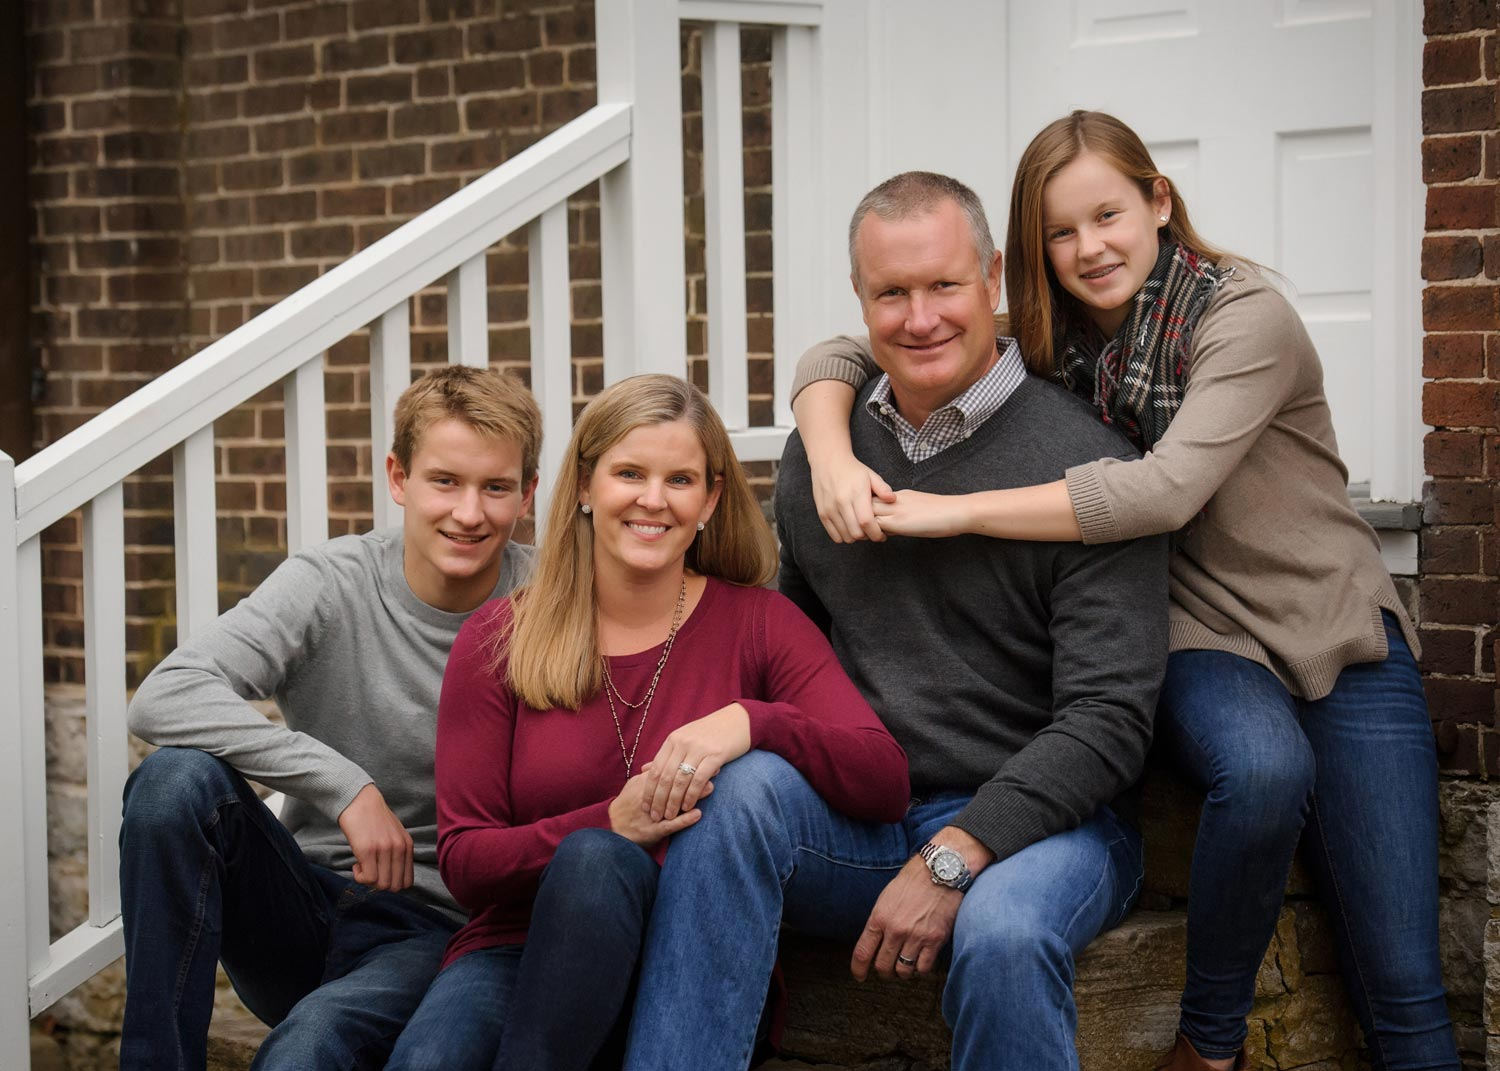 family_photography_by_Scott_Walz_studio_walz_Lexington_Ky079.jpg